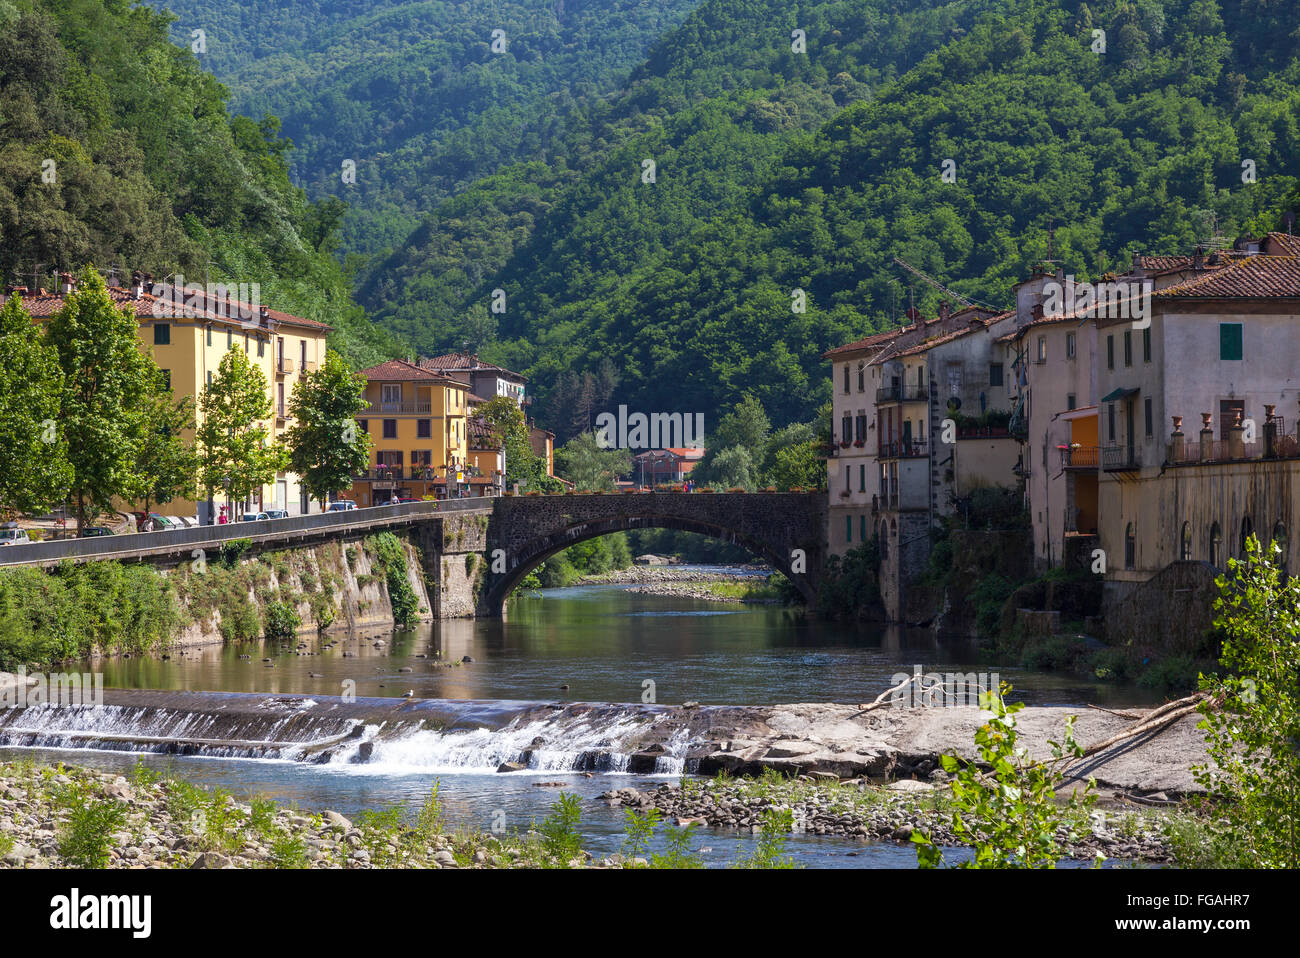 River through bagni di lucca italy stock photo 96119835 - Terme di bagni di lucca ...